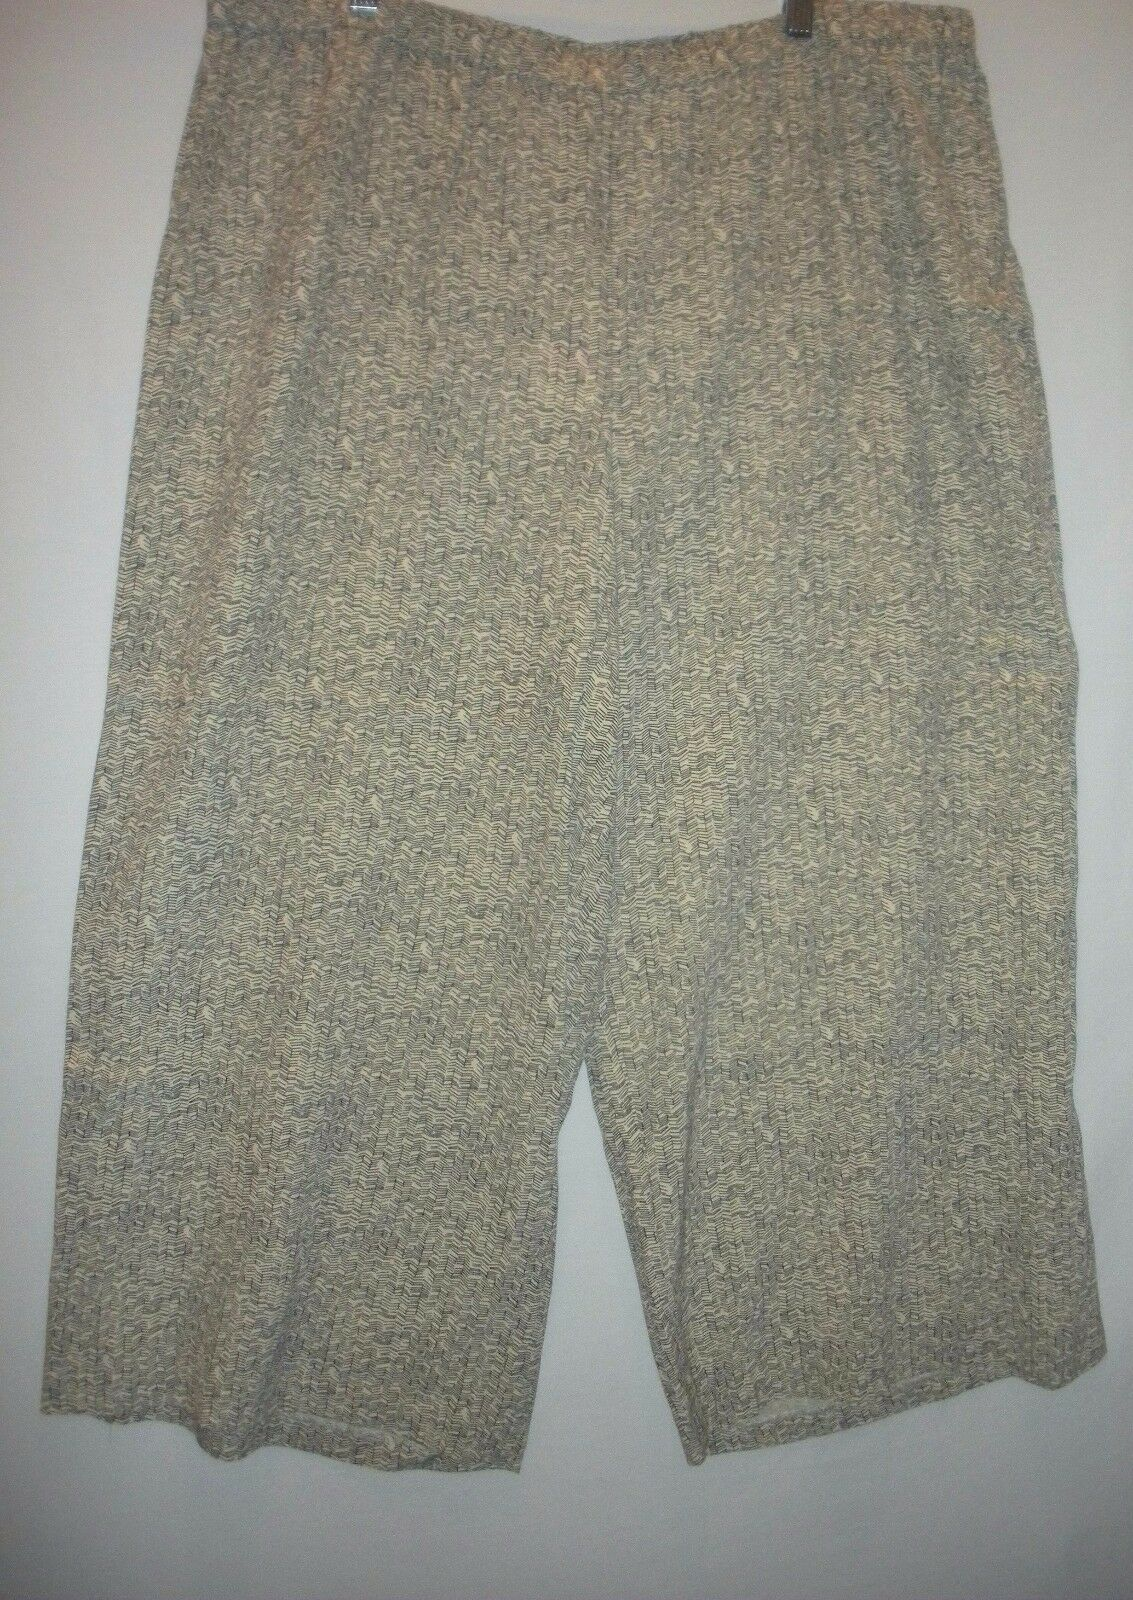 NEW with TAGS  EILEEN FISHER Wide Cropped Pant Size XL, MSRP  238